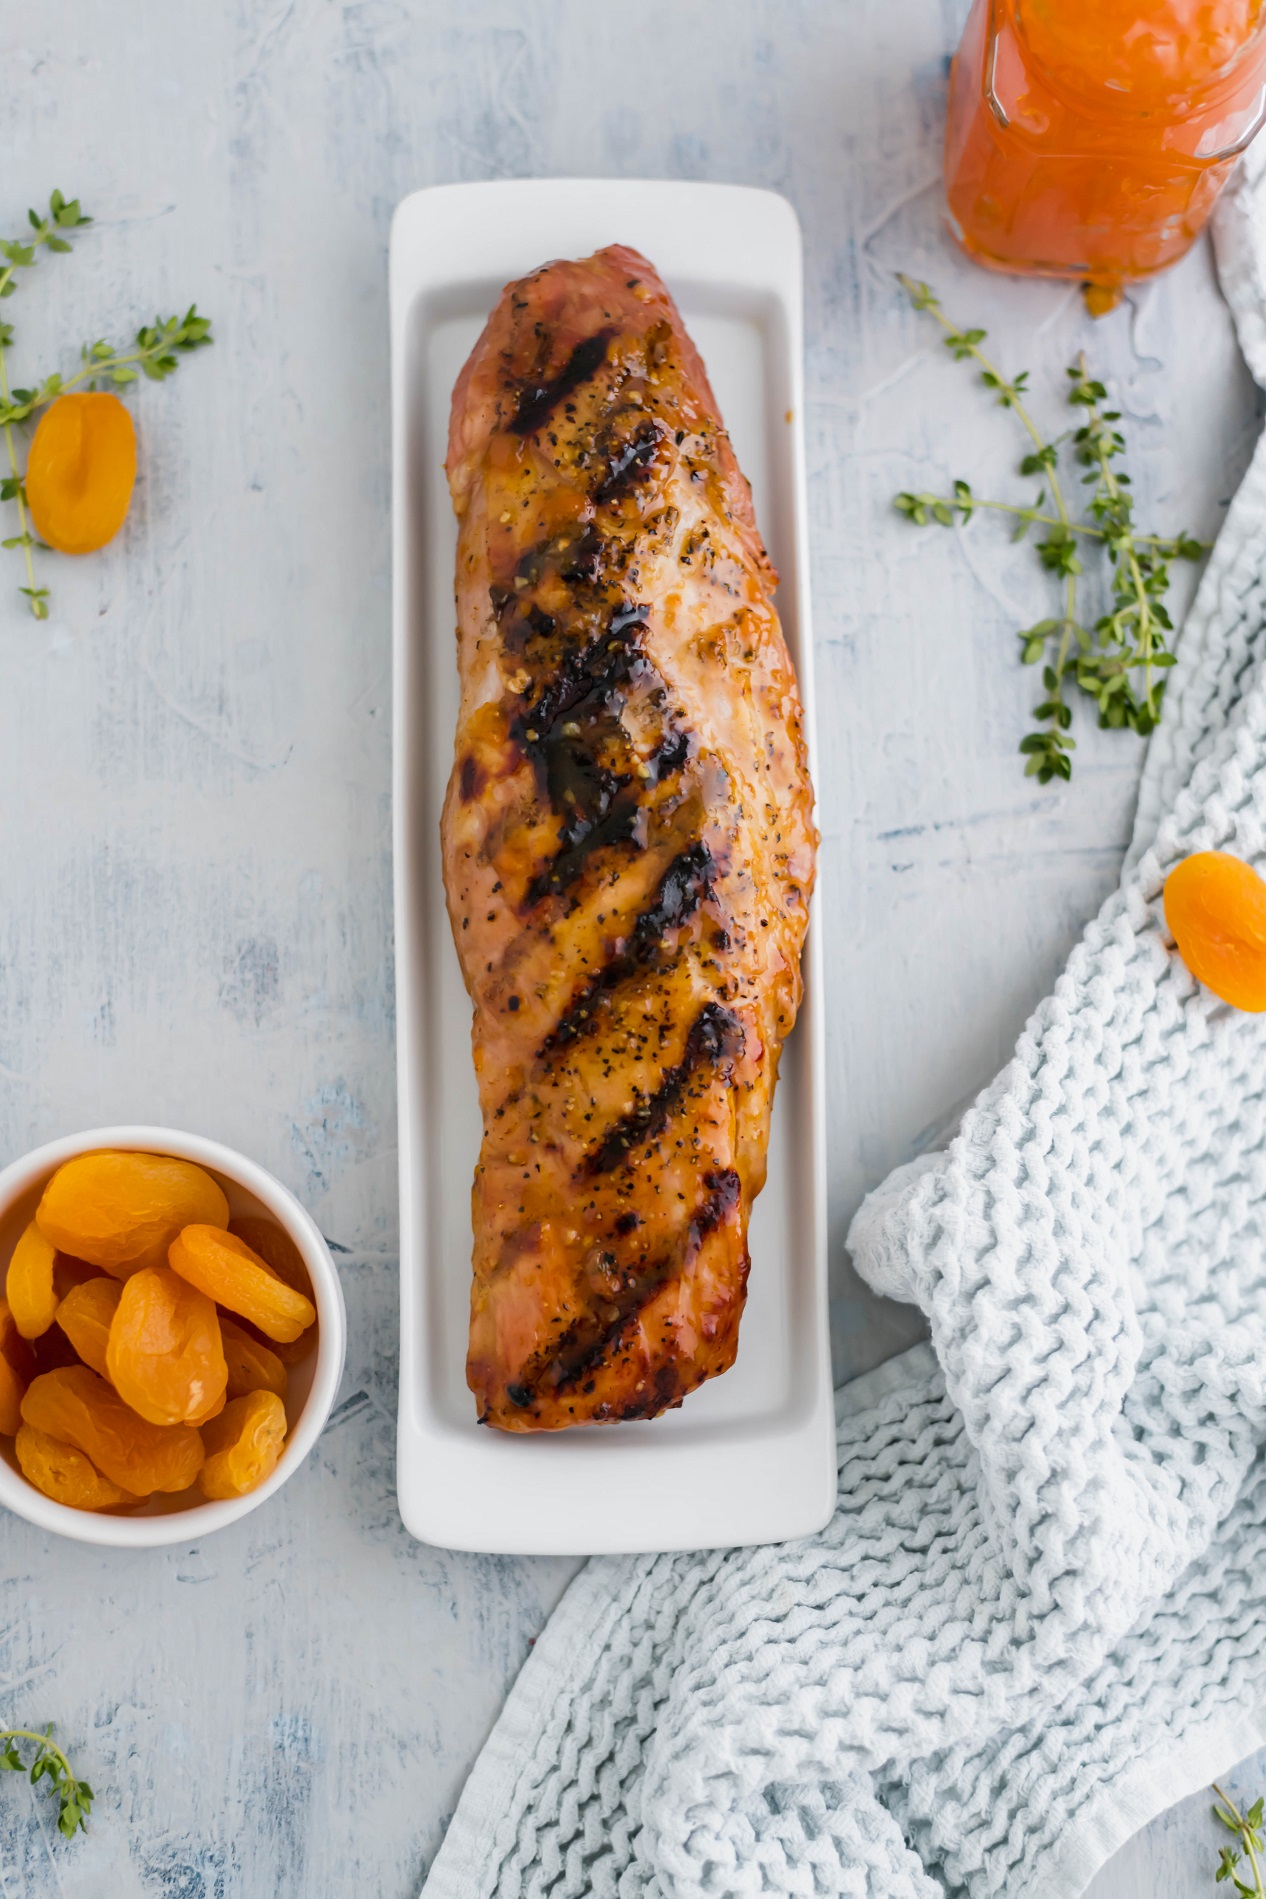 Apricot Glazed Pork Tenderloin makes for a flavorful and simple dinner any day of the week. Easy to make with just a handful of ingredients.